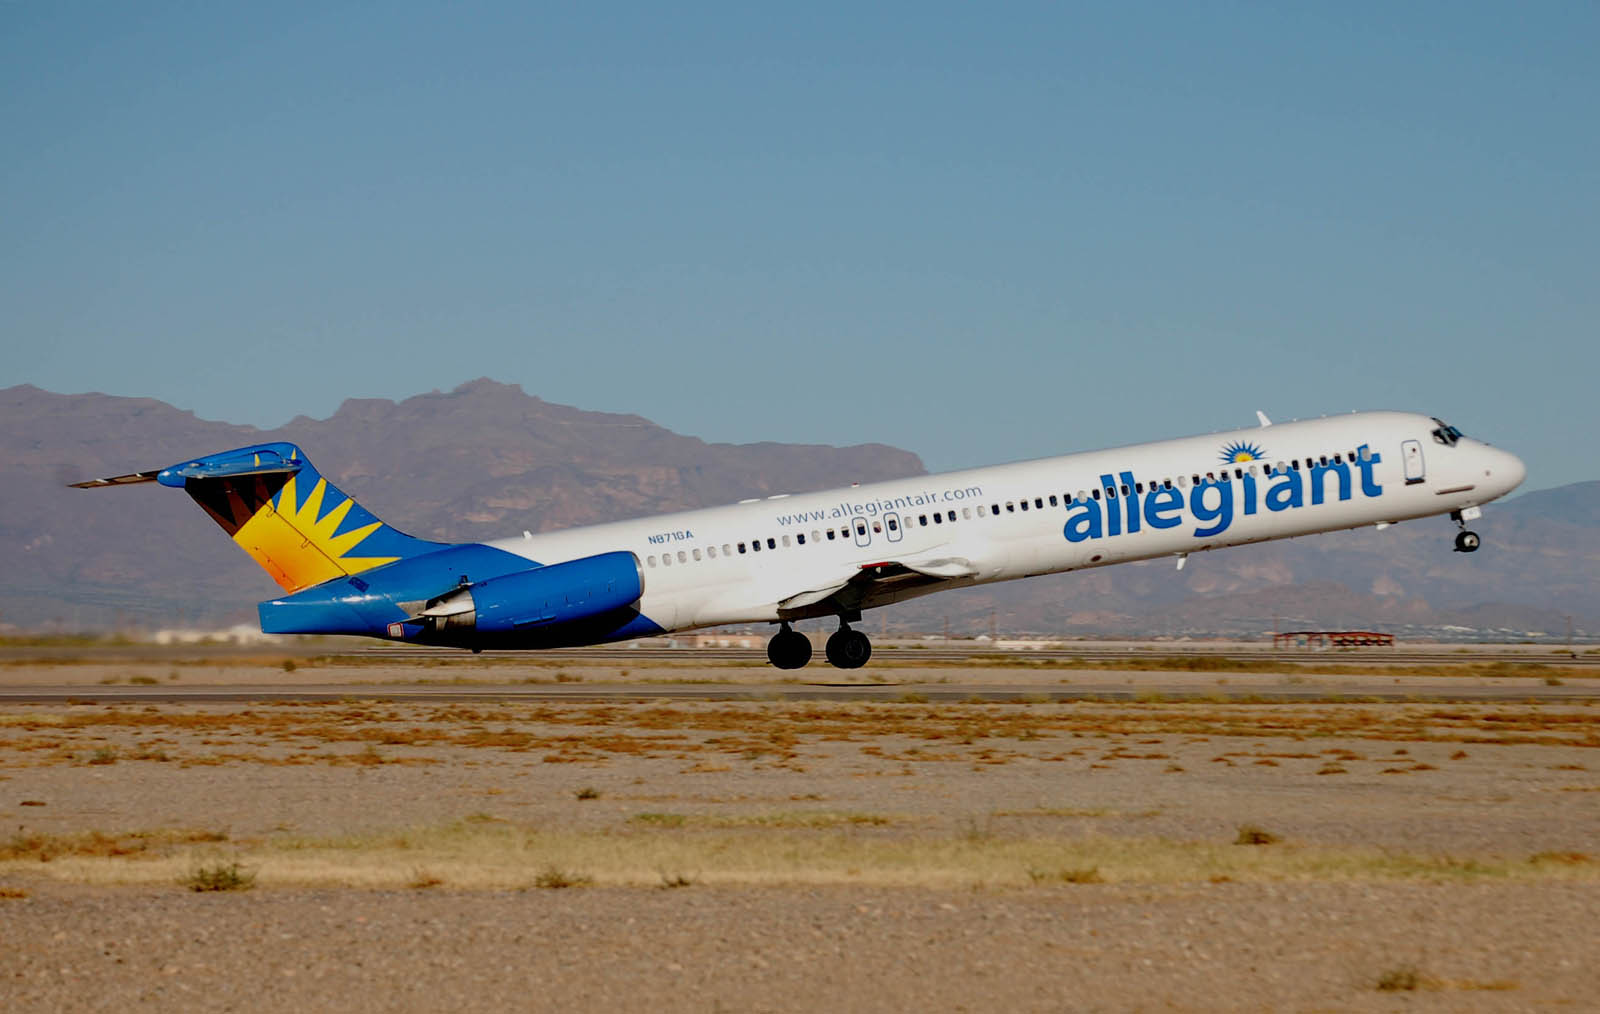 Allegiant's low-cost, high-efficiency, all-jet passenger airline offers air travel both on a stand-alone basis and bundled with travel products such as hotels, car rental and entertainment tickets.